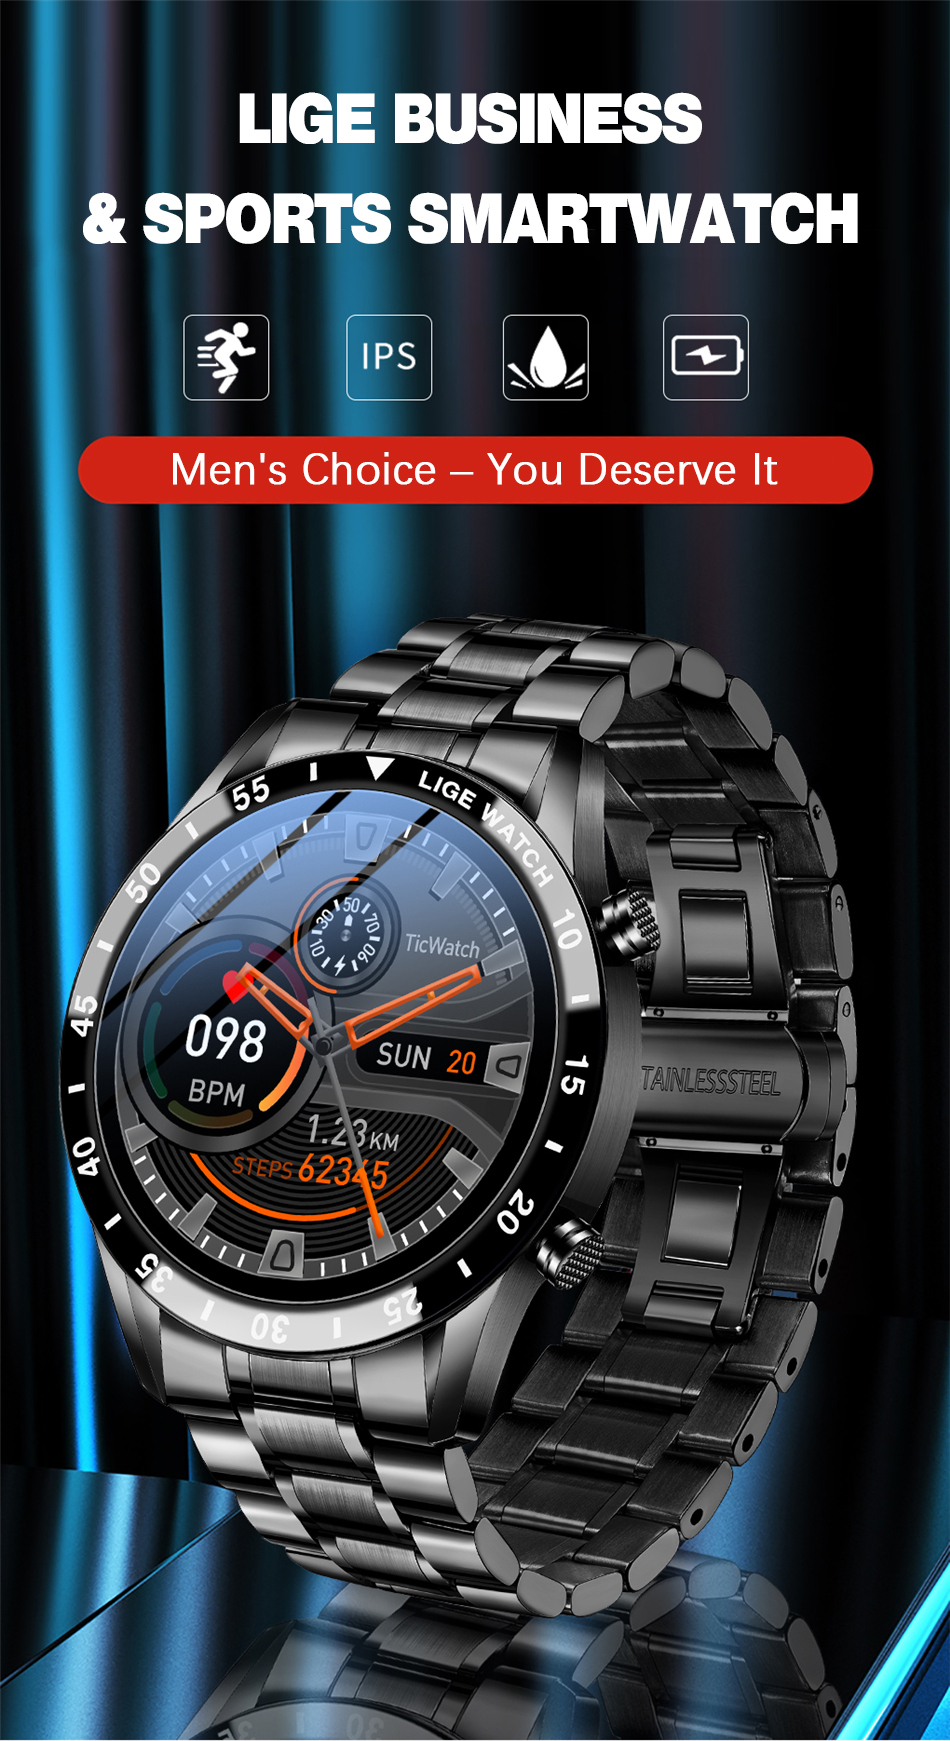 Hde8ac35736df469ab4267a57357910355 LIGE 2021 New Men Smart Watch Bluetooth Call Watch IP67 Waterproof Sports Fitness Watch For Android IOS Smart Watch 2021 + Box